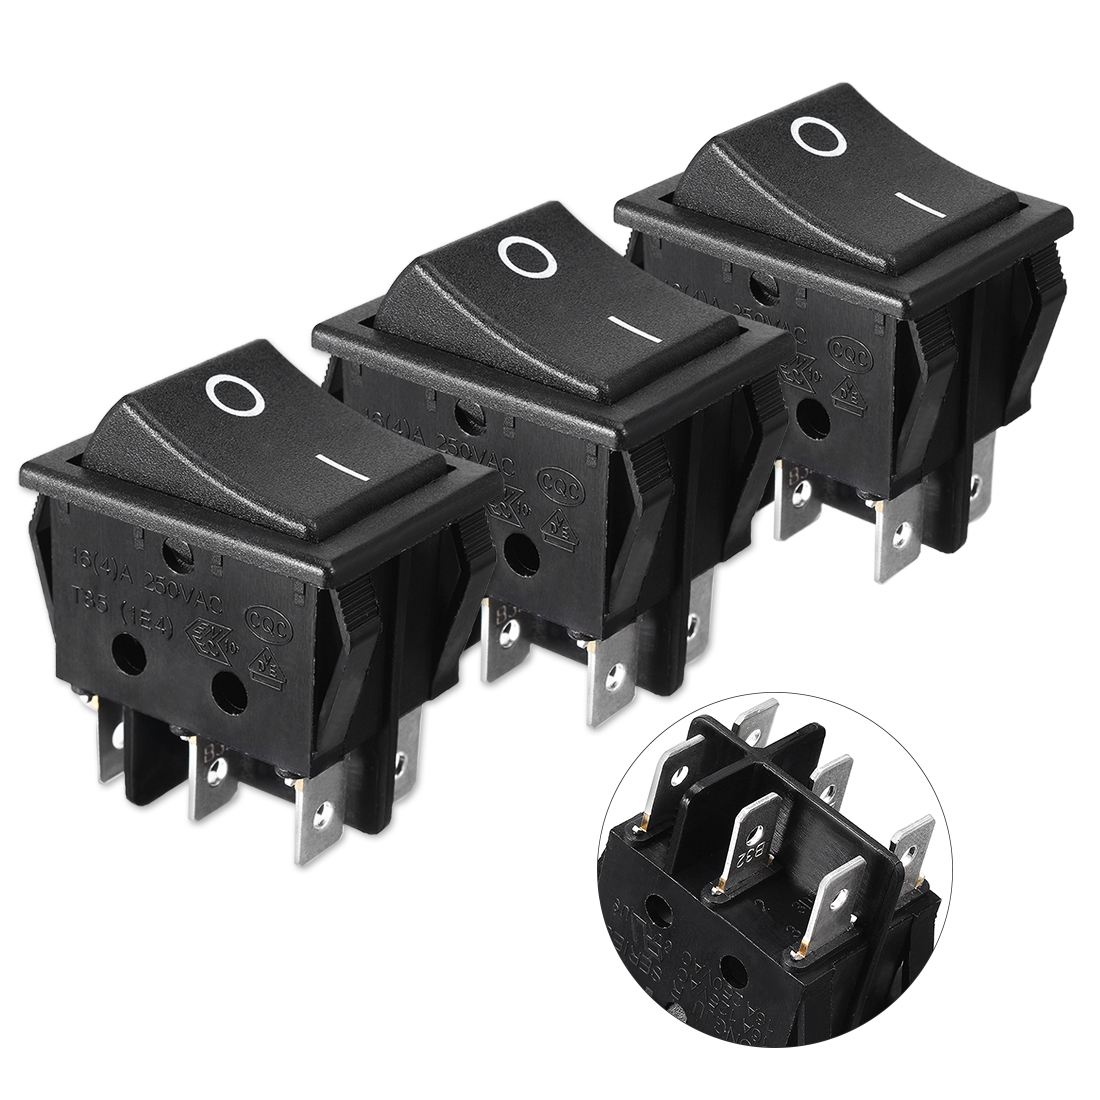 3 Pcs I/O ON/OFF DPDT 6-Terminals Boat Rocker Switch 16A 250VAC 20A 125VAC